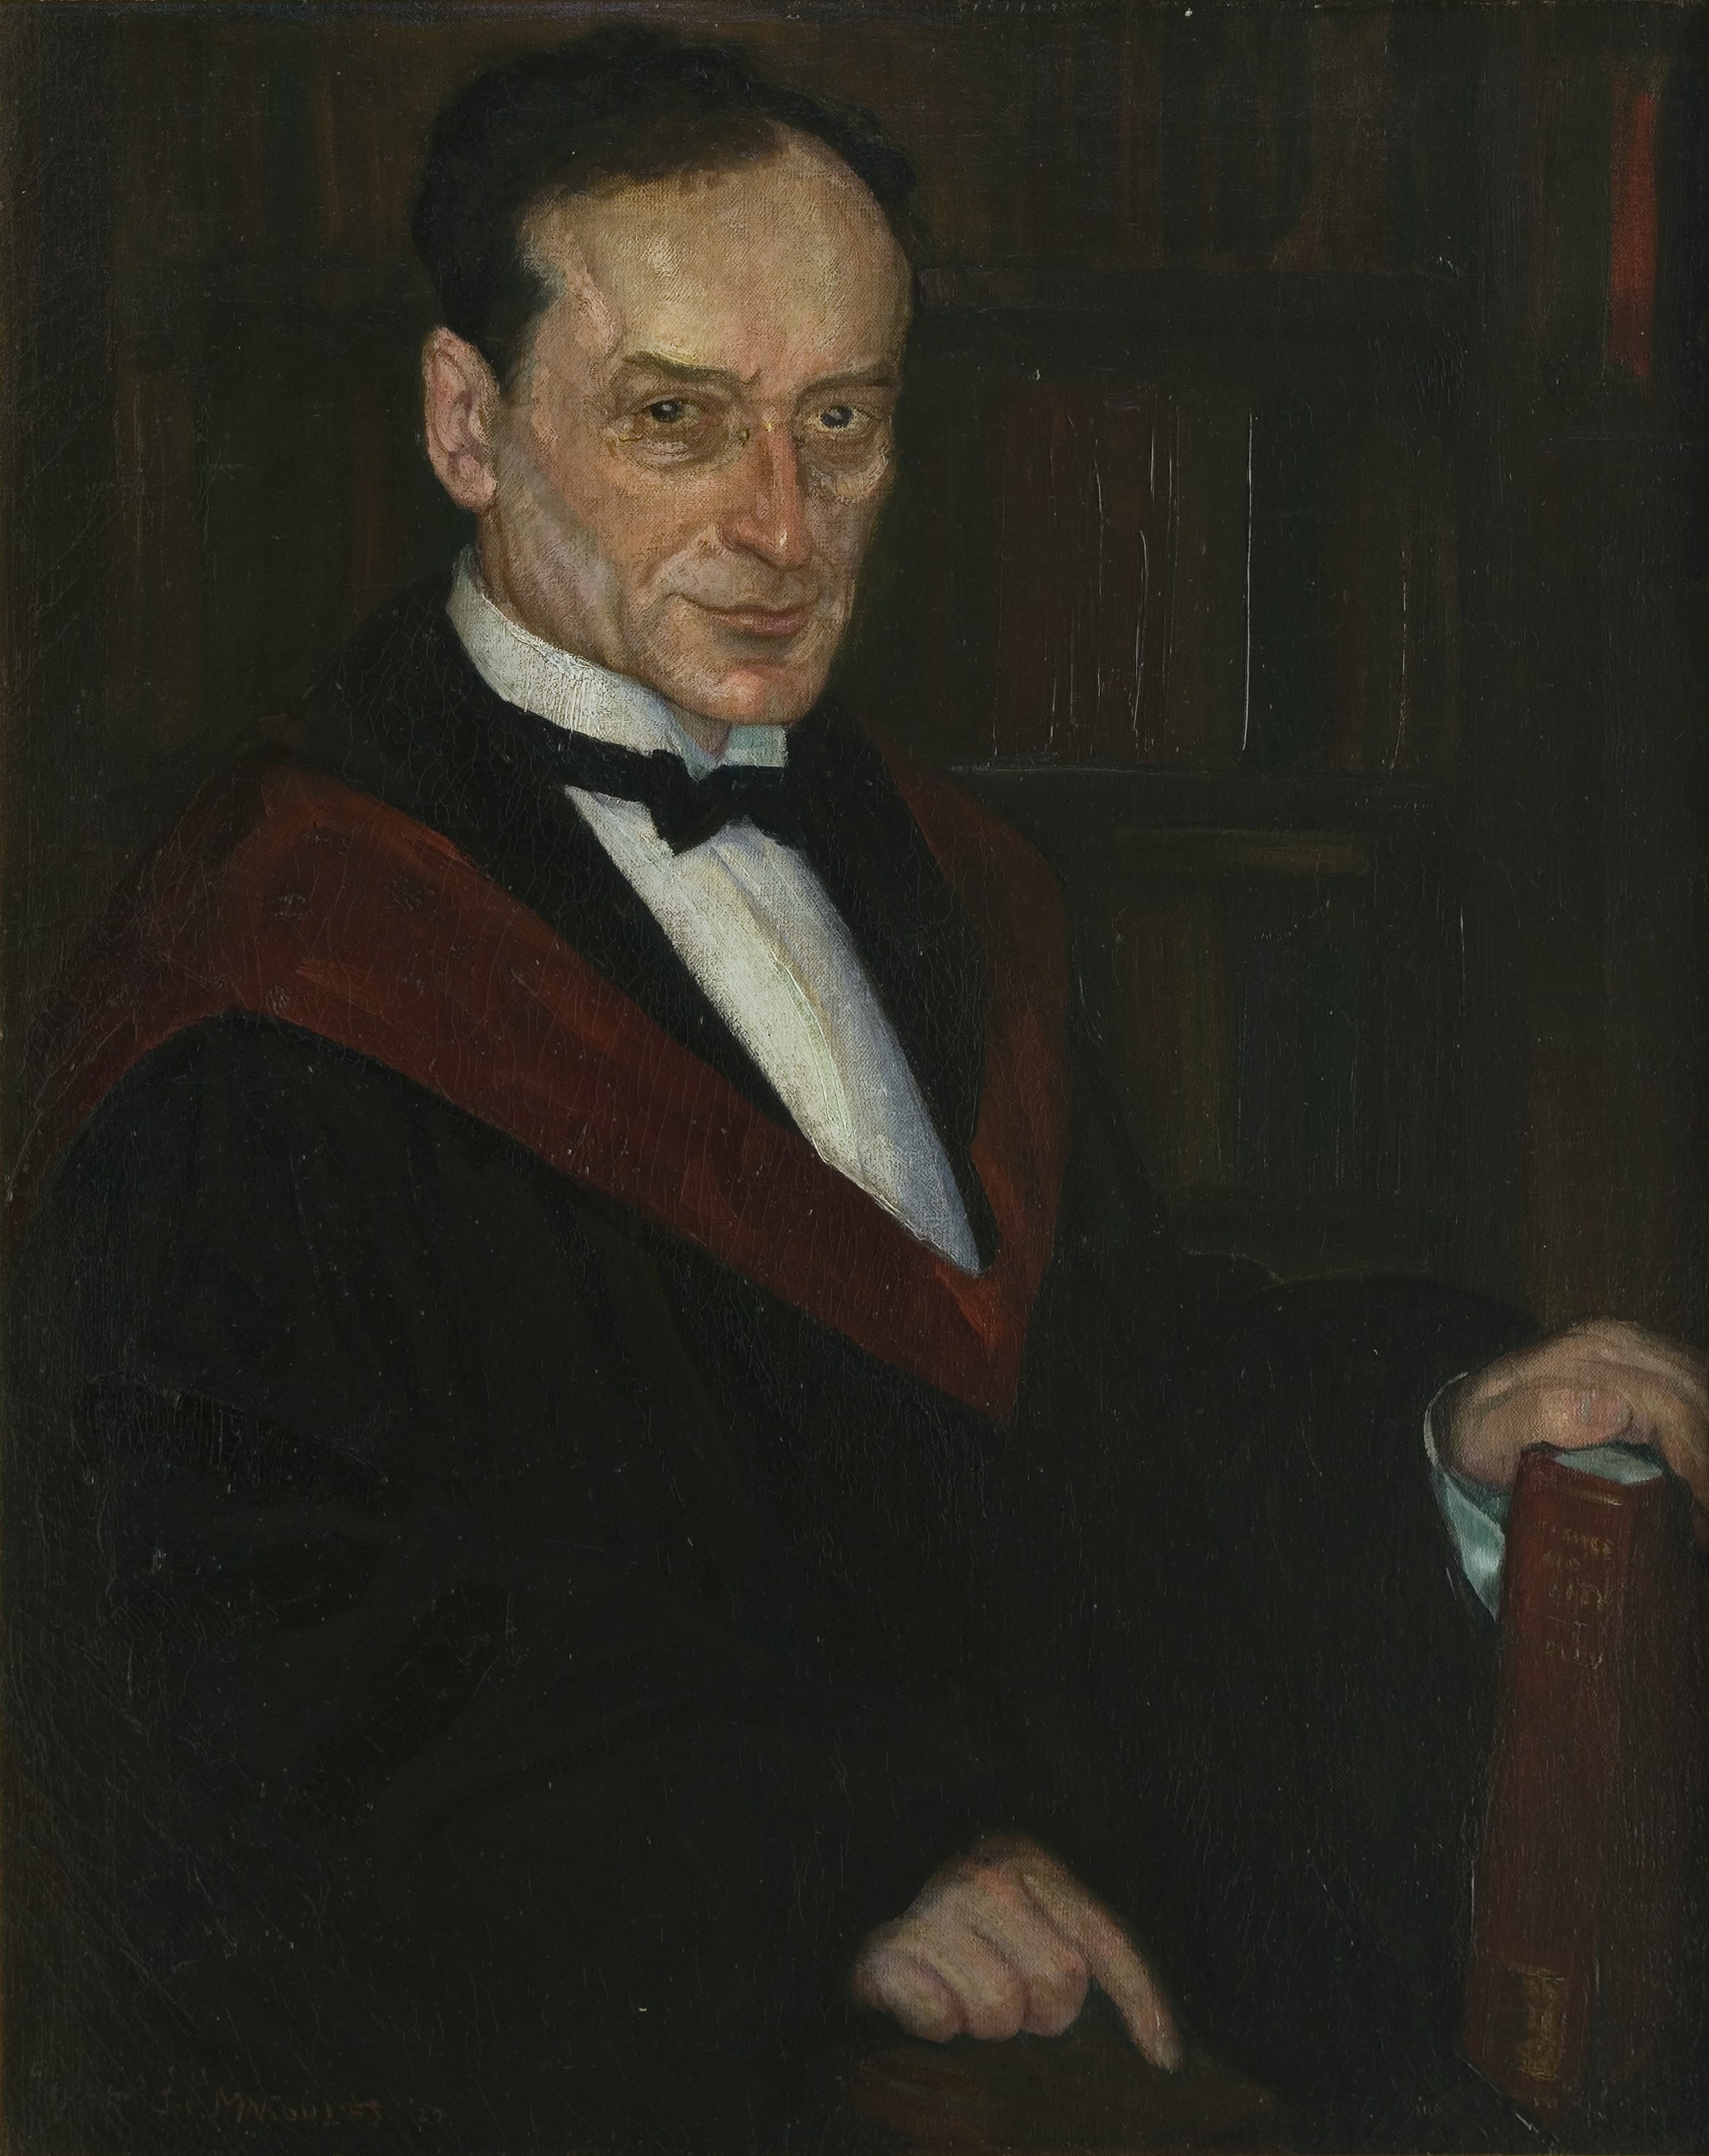 Professor Morris Raphael Cohen, CCNY Class of 1900, Presented by Alumni and Friends in Commemoration of Twenty-Five Years of Service, Departments of Mathematics and Philosophy, Oct. 15, 1927, Painted by Joseph Margulies